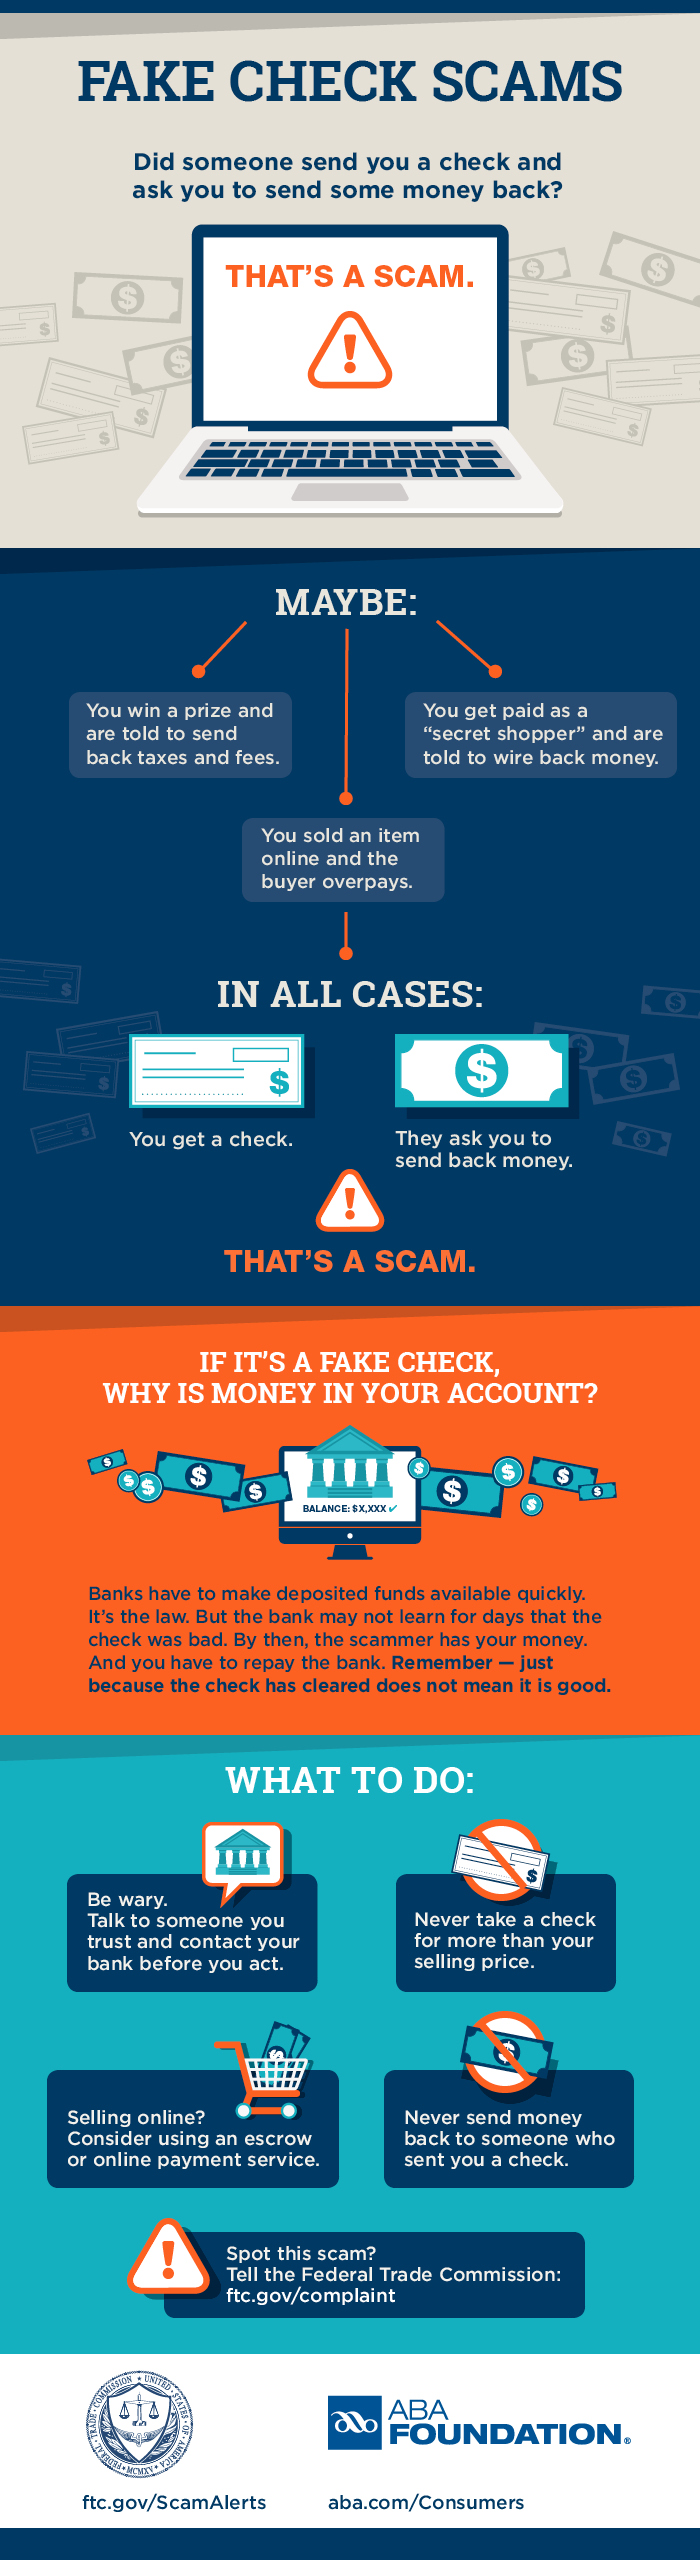 Anatomy of a fake check scam | Consumer Information